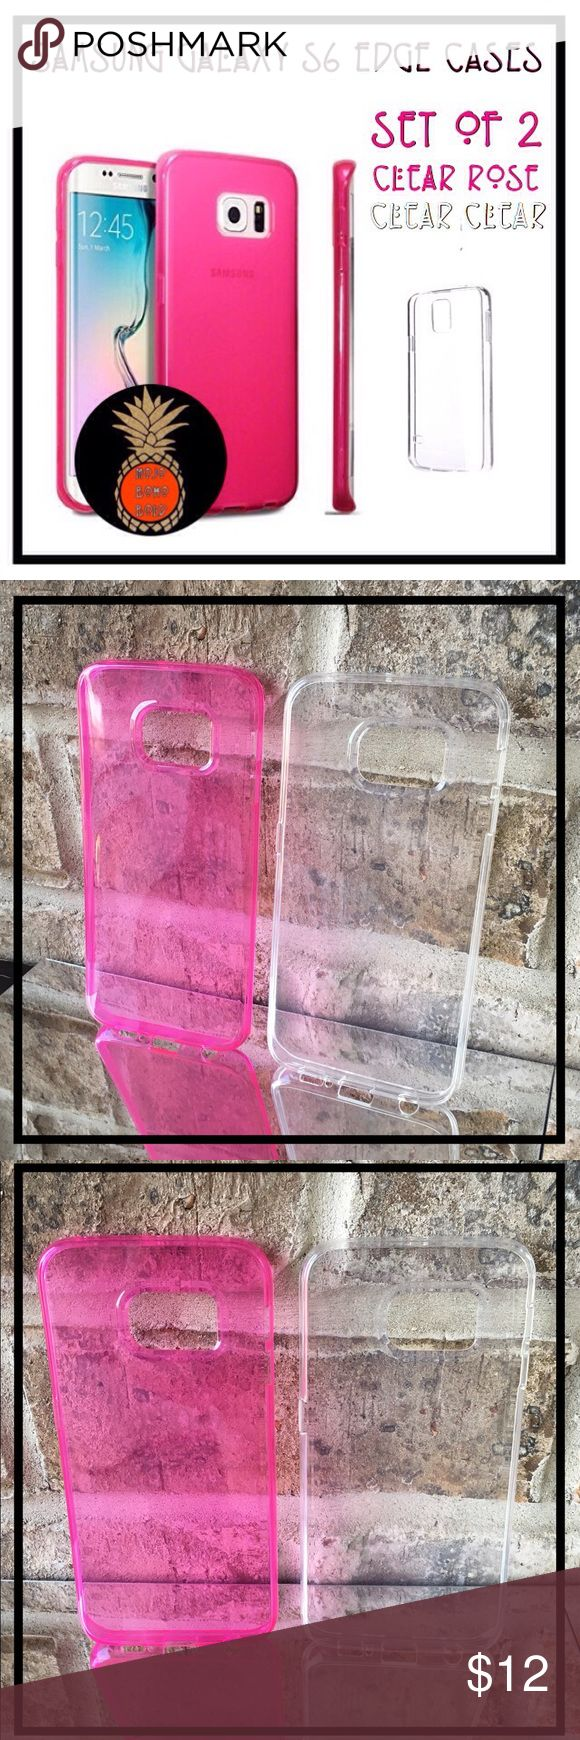 NEW SAMSUNG GALAXY S6 EDGE SMARTPHONE CASES SET 🆕 SAMSUNG GALAXY S6 EDGE SMARTPHONE JELLY CASES 💗 SET OF 2 🆕  ▪️Size: Galaxy S6 Edge cases only. ▪️Colors: Clear Rose, Clear Clear. ▪️Made of flexible Silicon. ▪️Easy access to all functions & ports.  💗 Great jelly cases for Fun & Love in February! 💗  ‼️ CASES ONLY ‼️ ❌Galaxy S6 Edge phone Not Included❌ Accessories Phone Cases